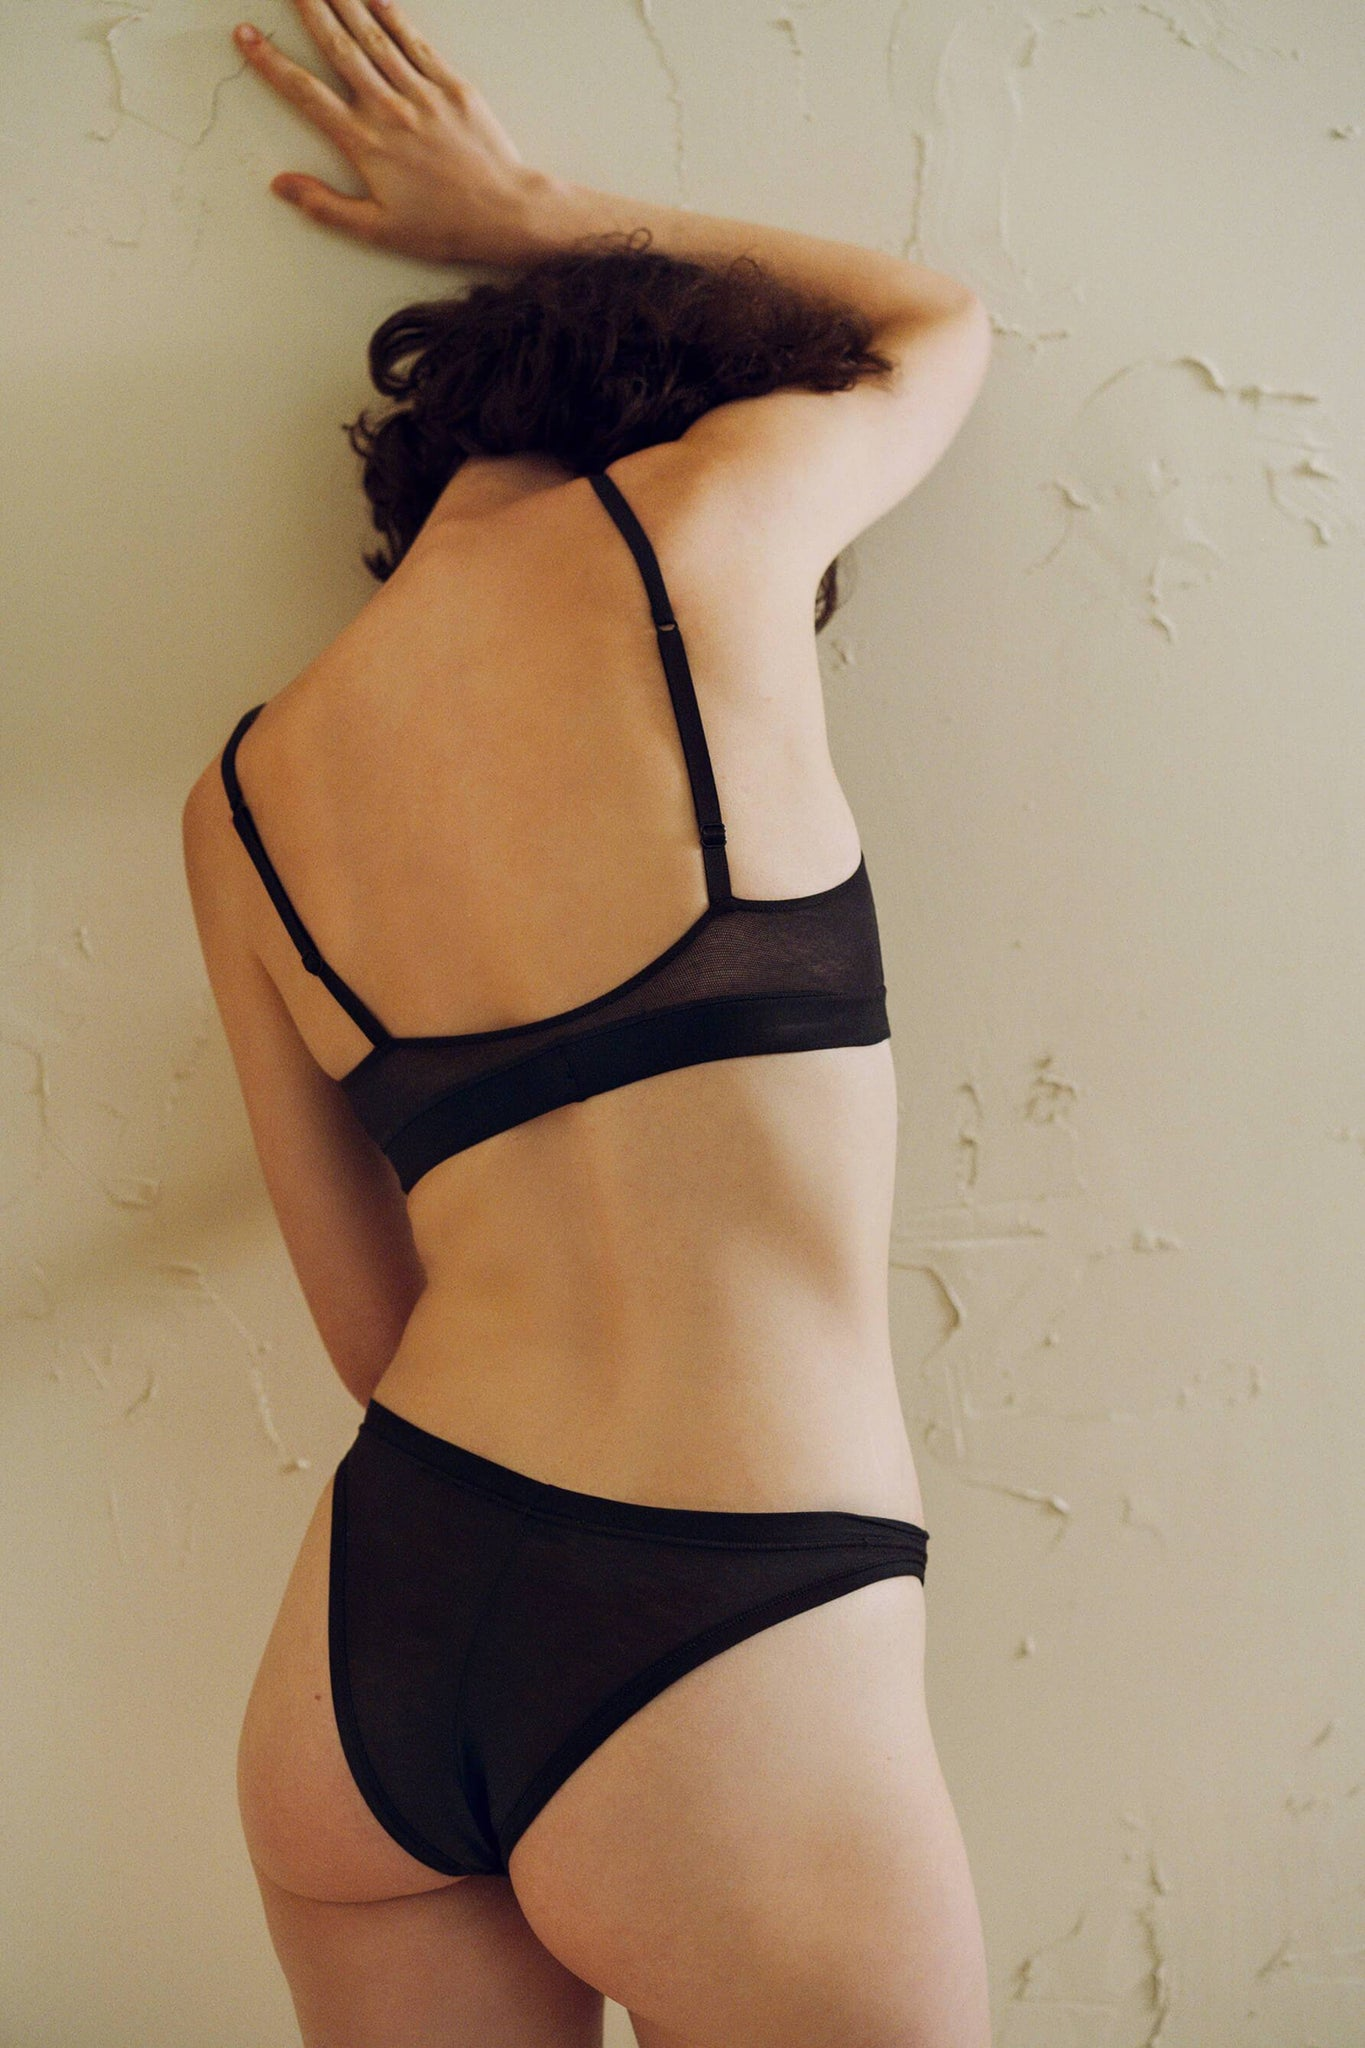 Black Fresco Cotton Bikini Brief from Ethical Lingerie Designer The Great Eros